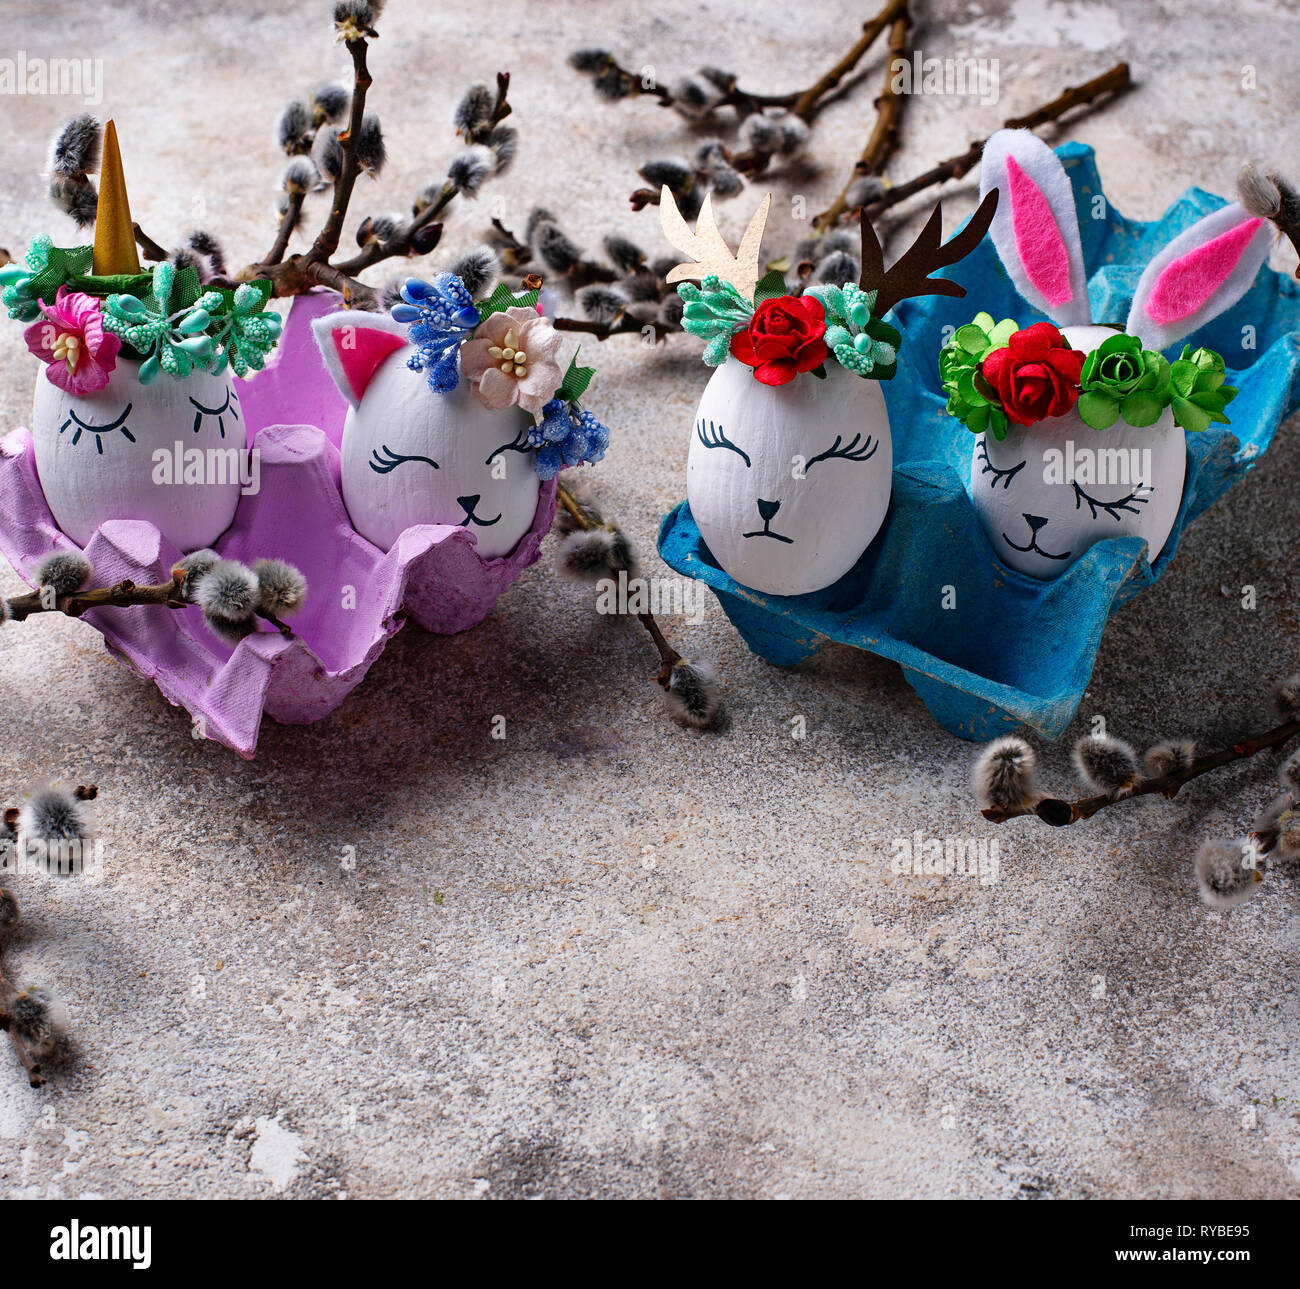 Easter eggs in shape of bunny, cat and deer - Stock Image